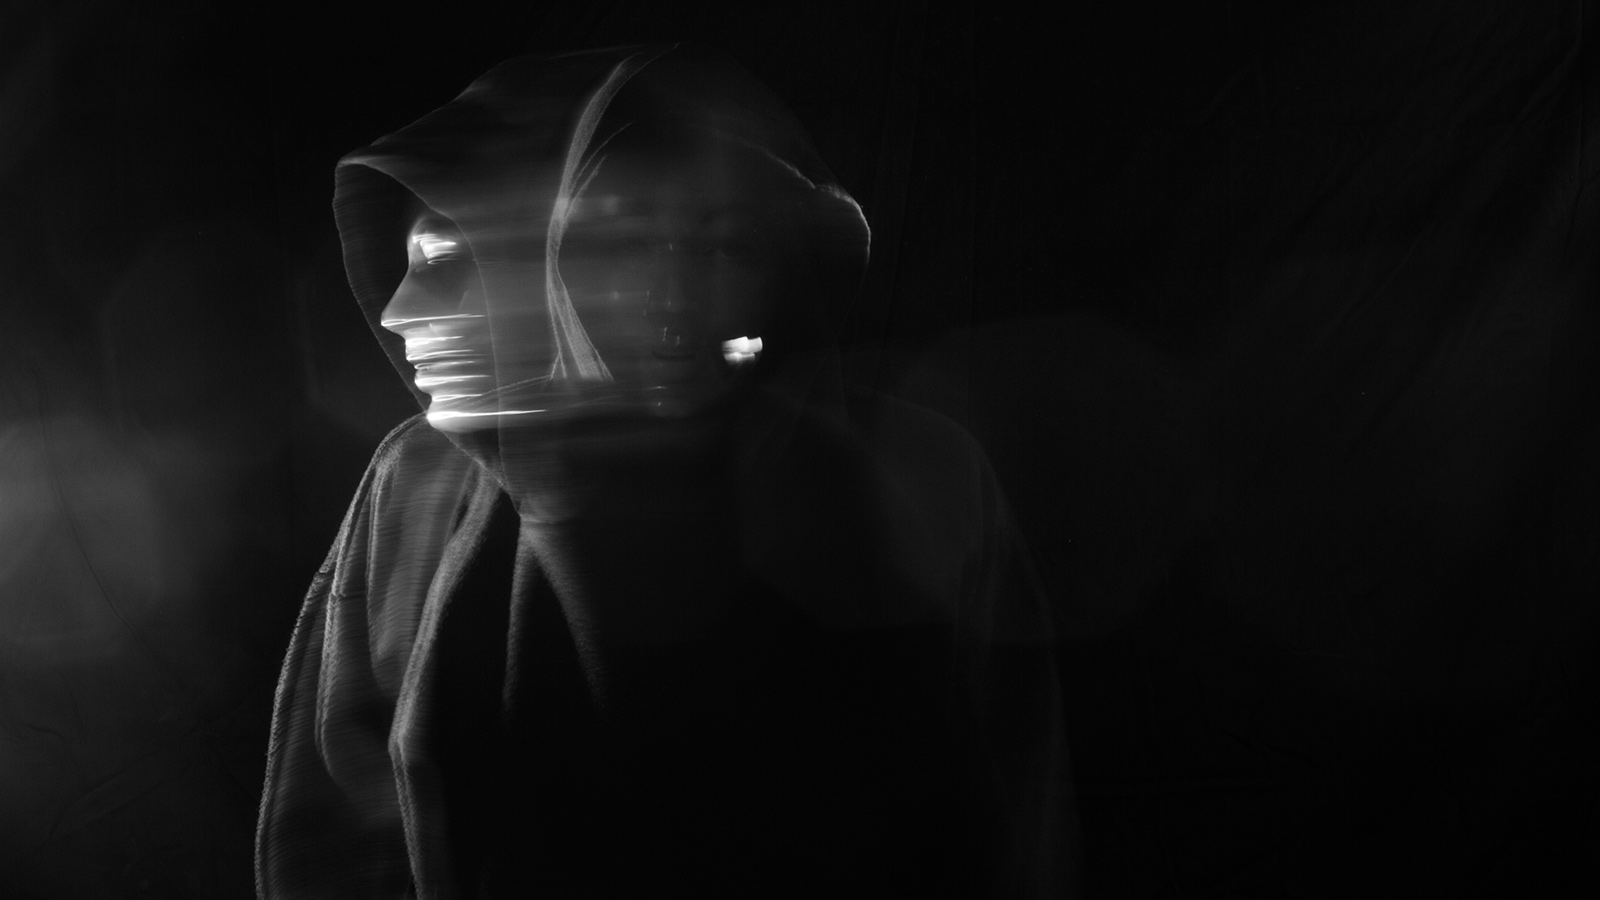 See A Storm of Light, Ex-Neurosis Member's Dizzying New Electro-Ambient IIVII Video